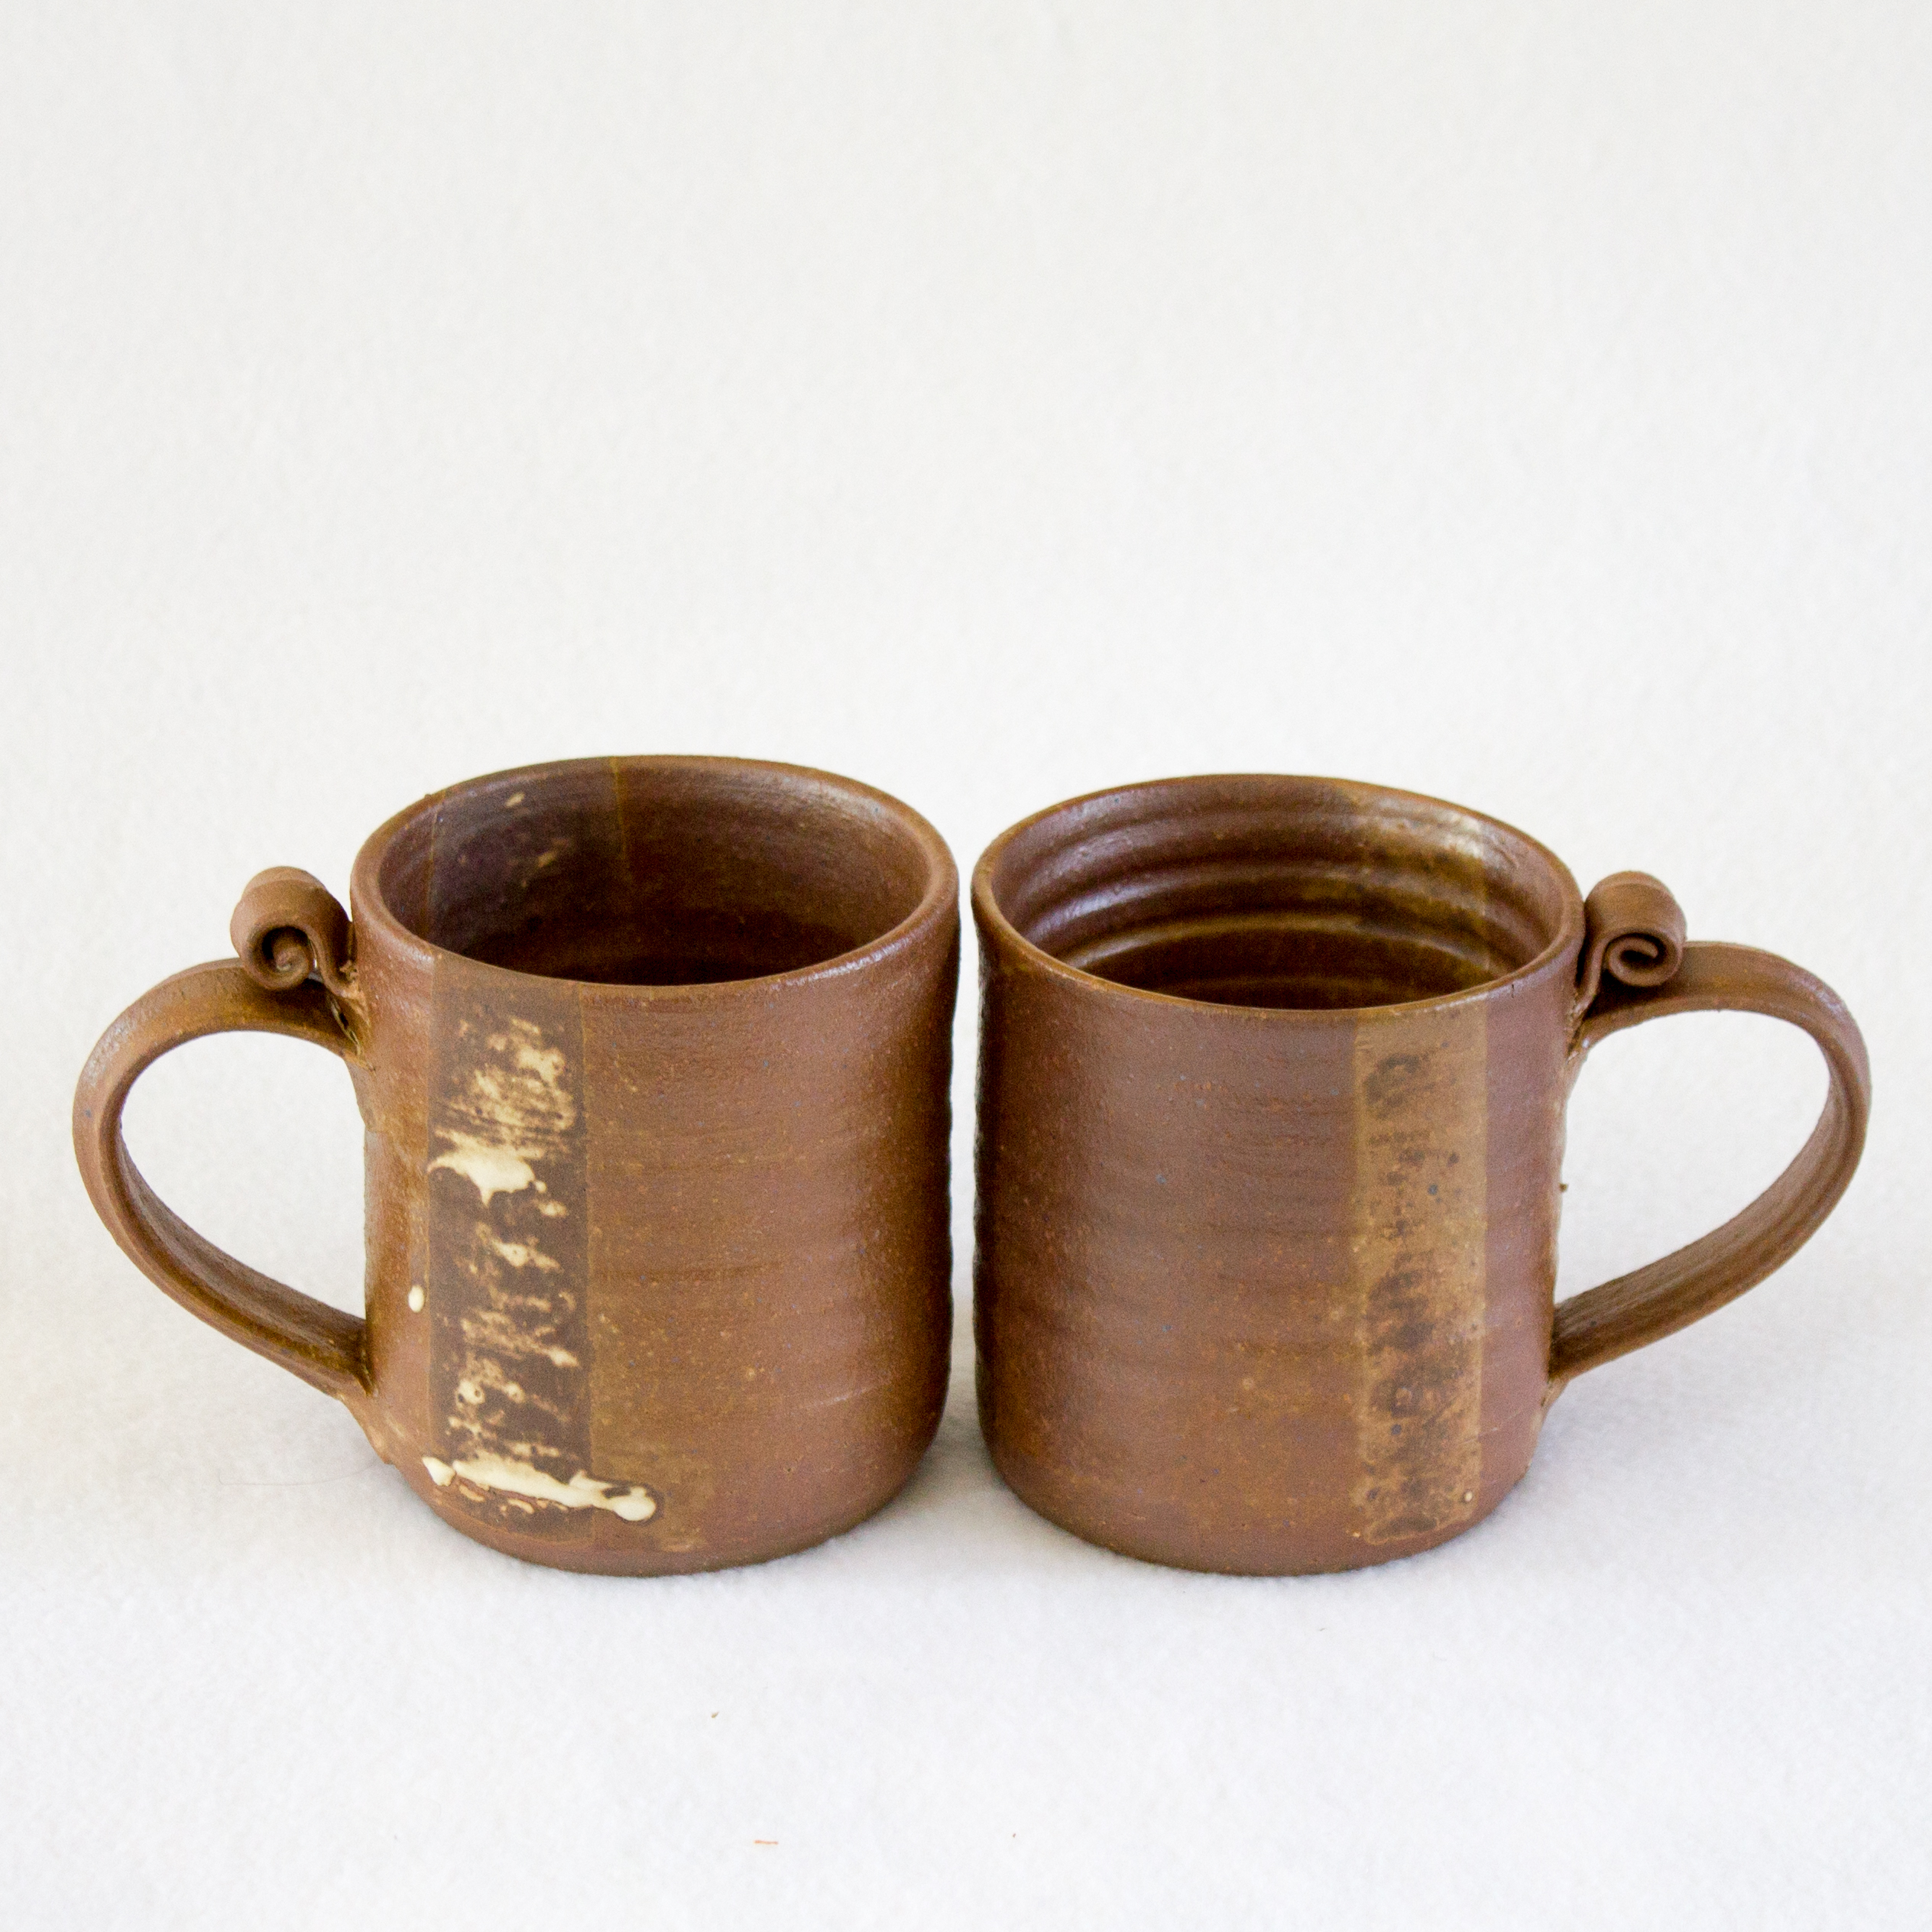 Mugs- Matt Brown and Chestnut 4.5x3